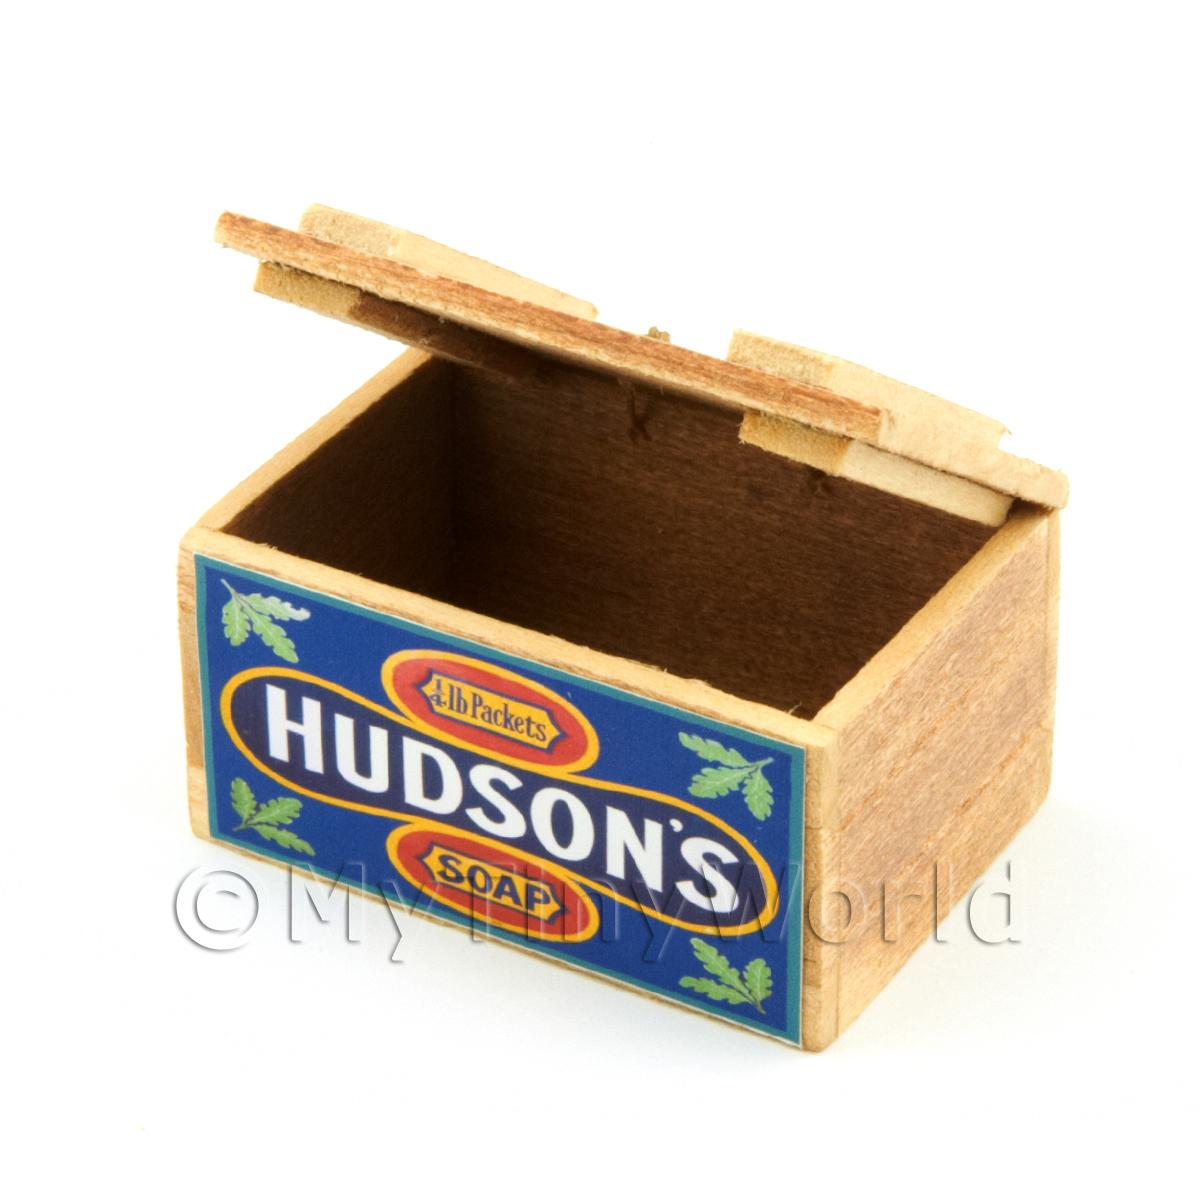 Dolls House Hudsons Wooden Shop Display Box